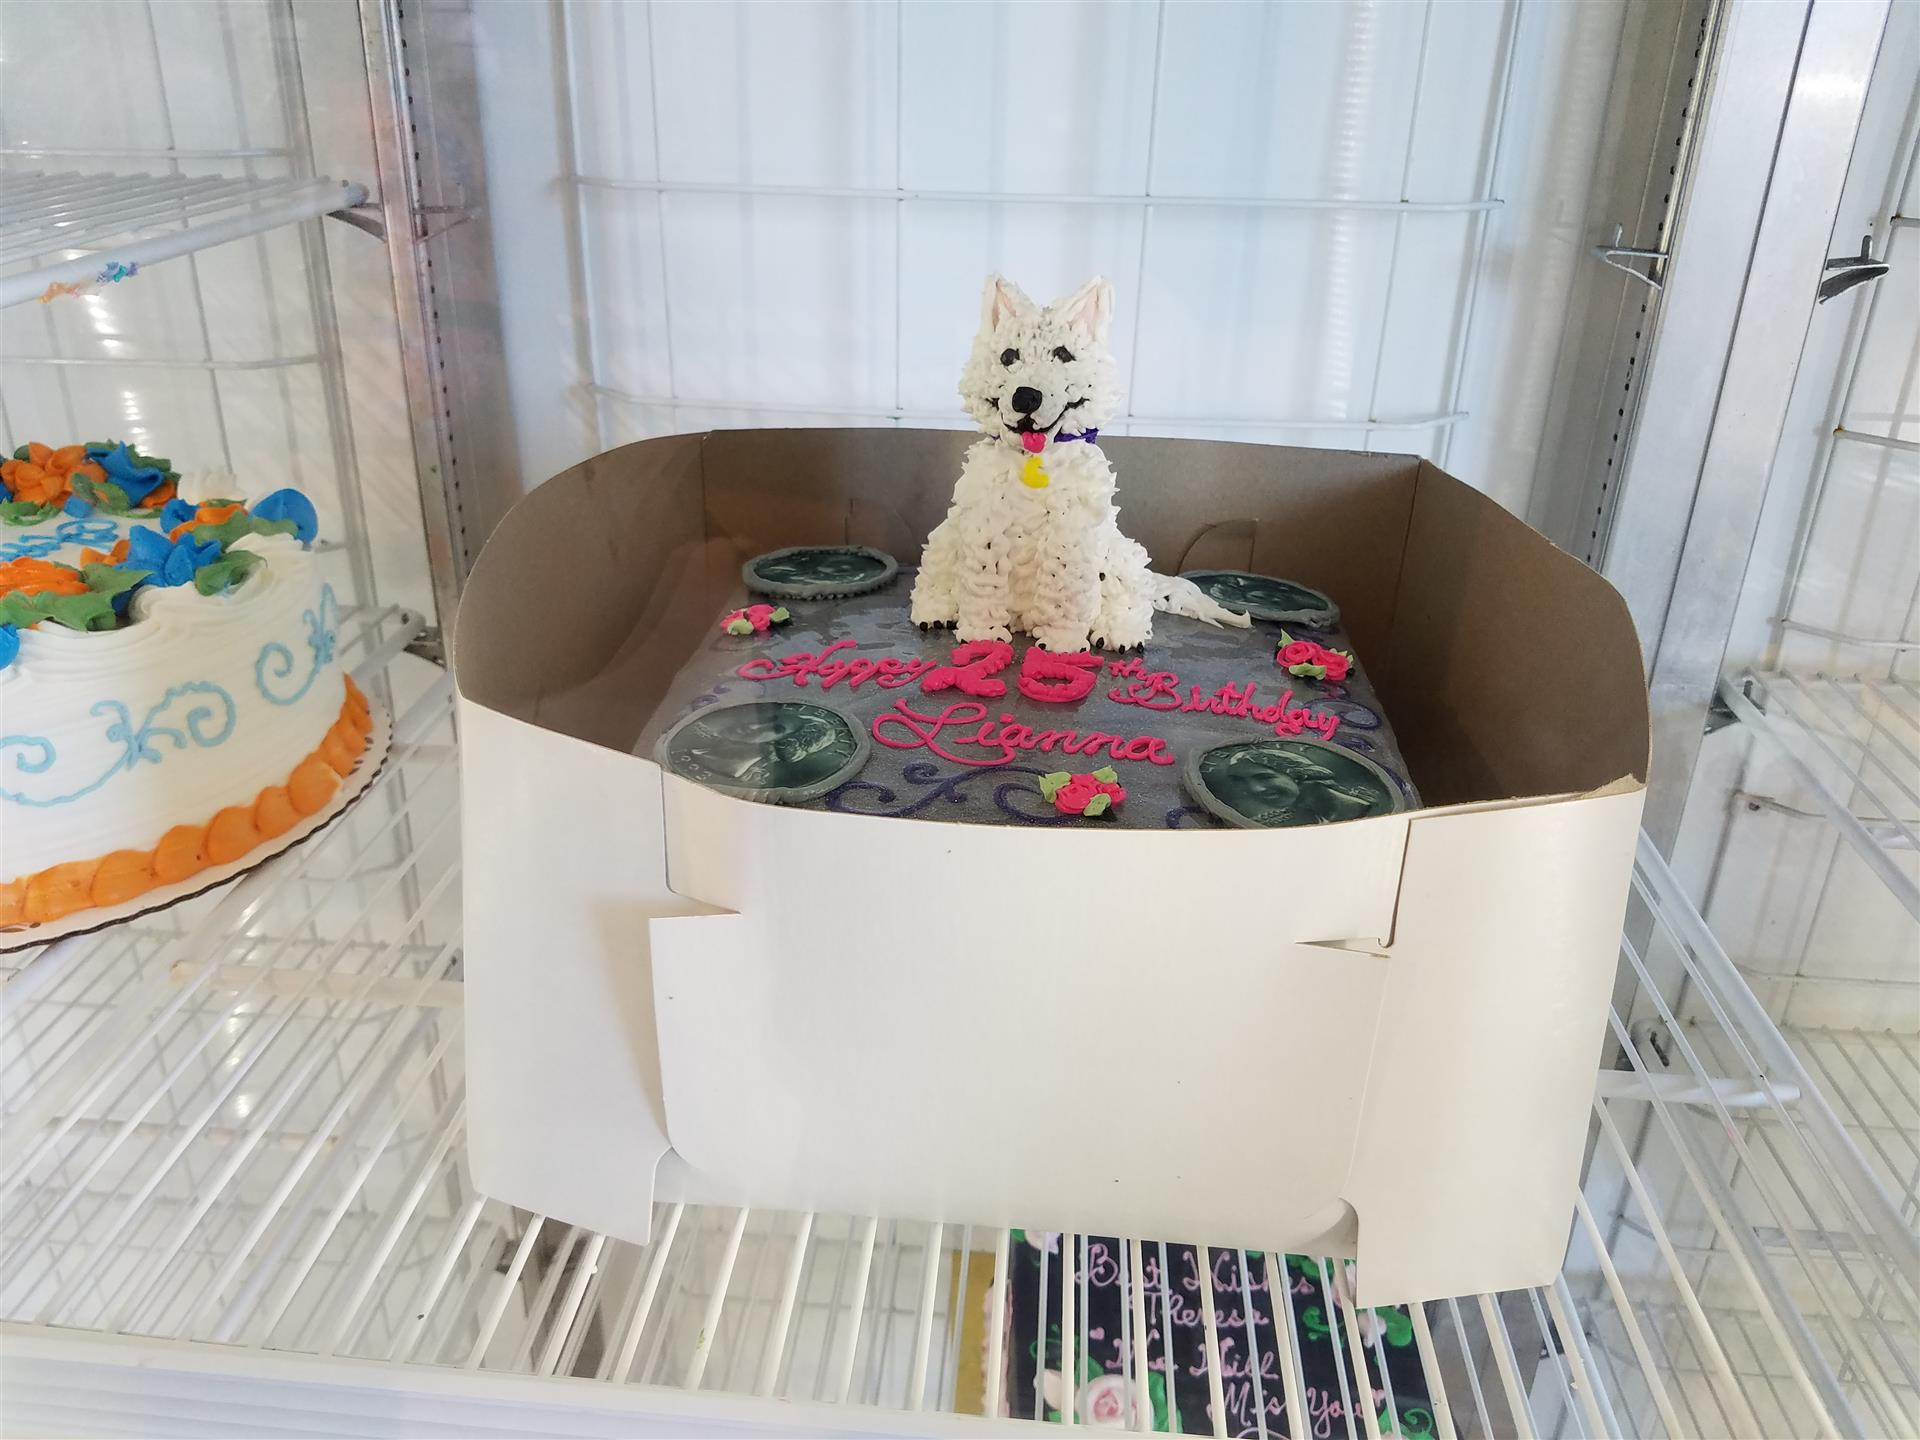 cake with a white dog created on top